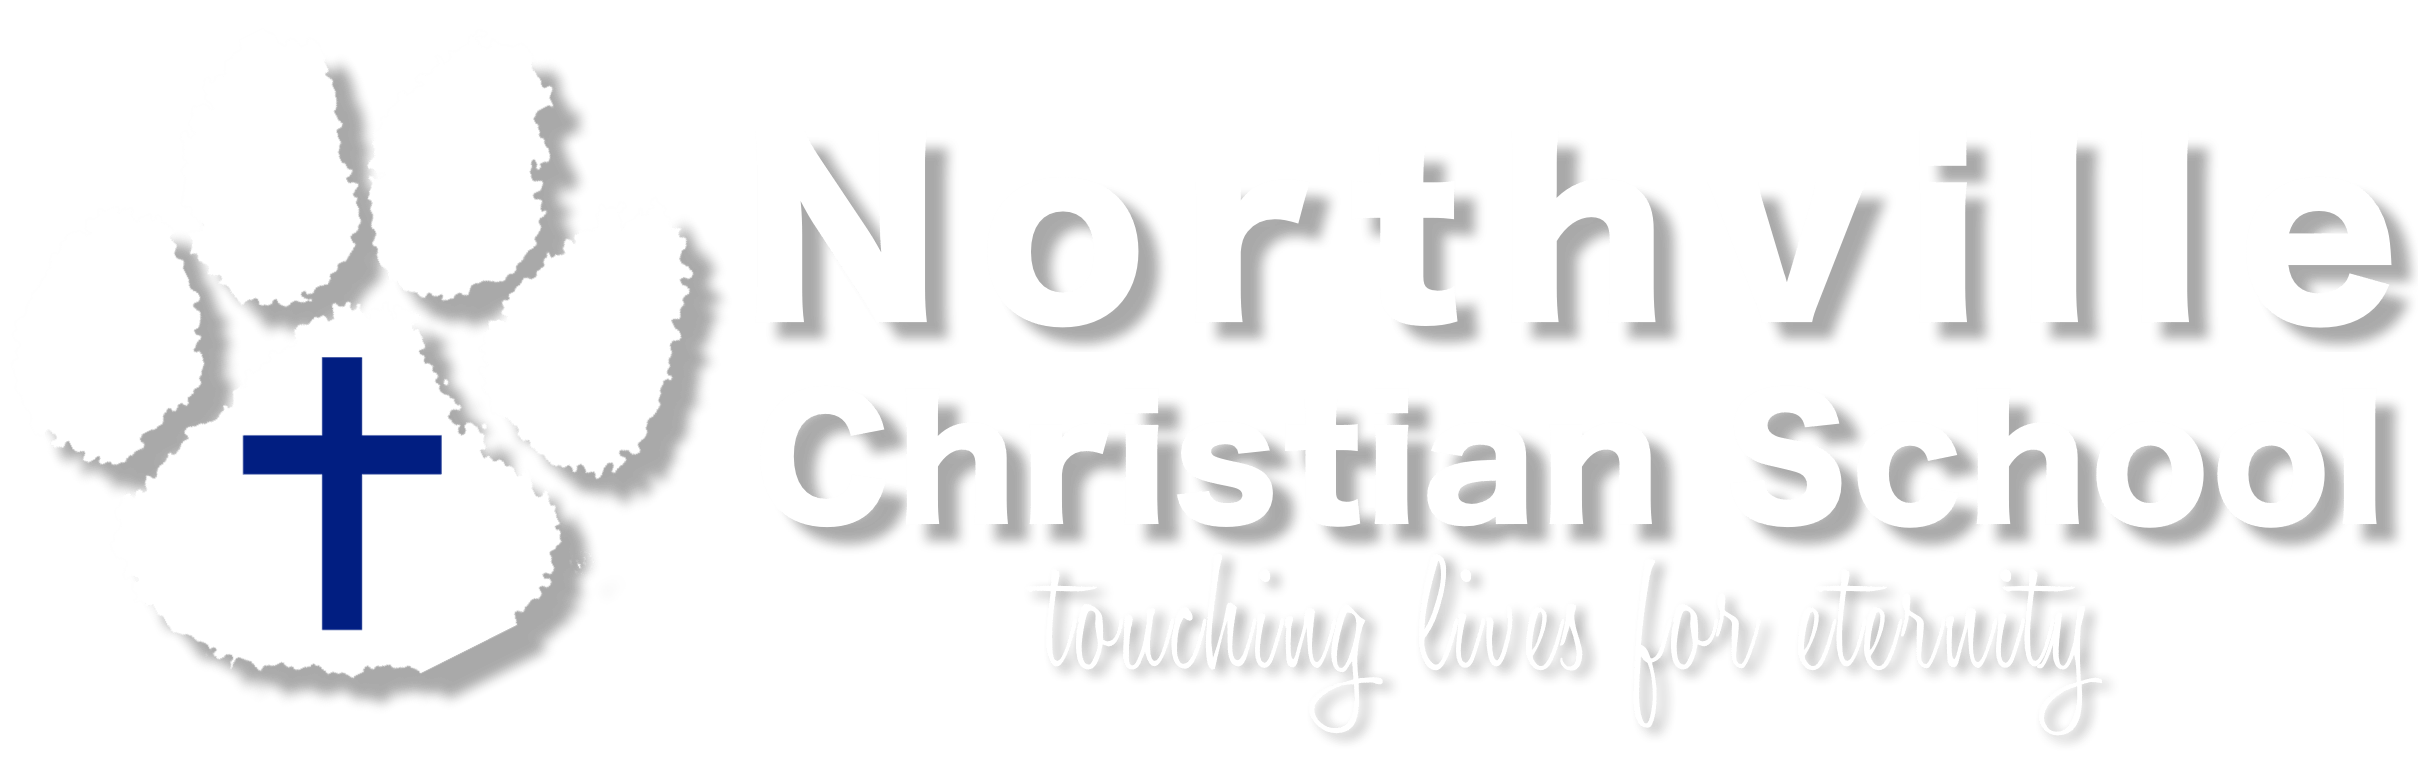 Northville Christian School